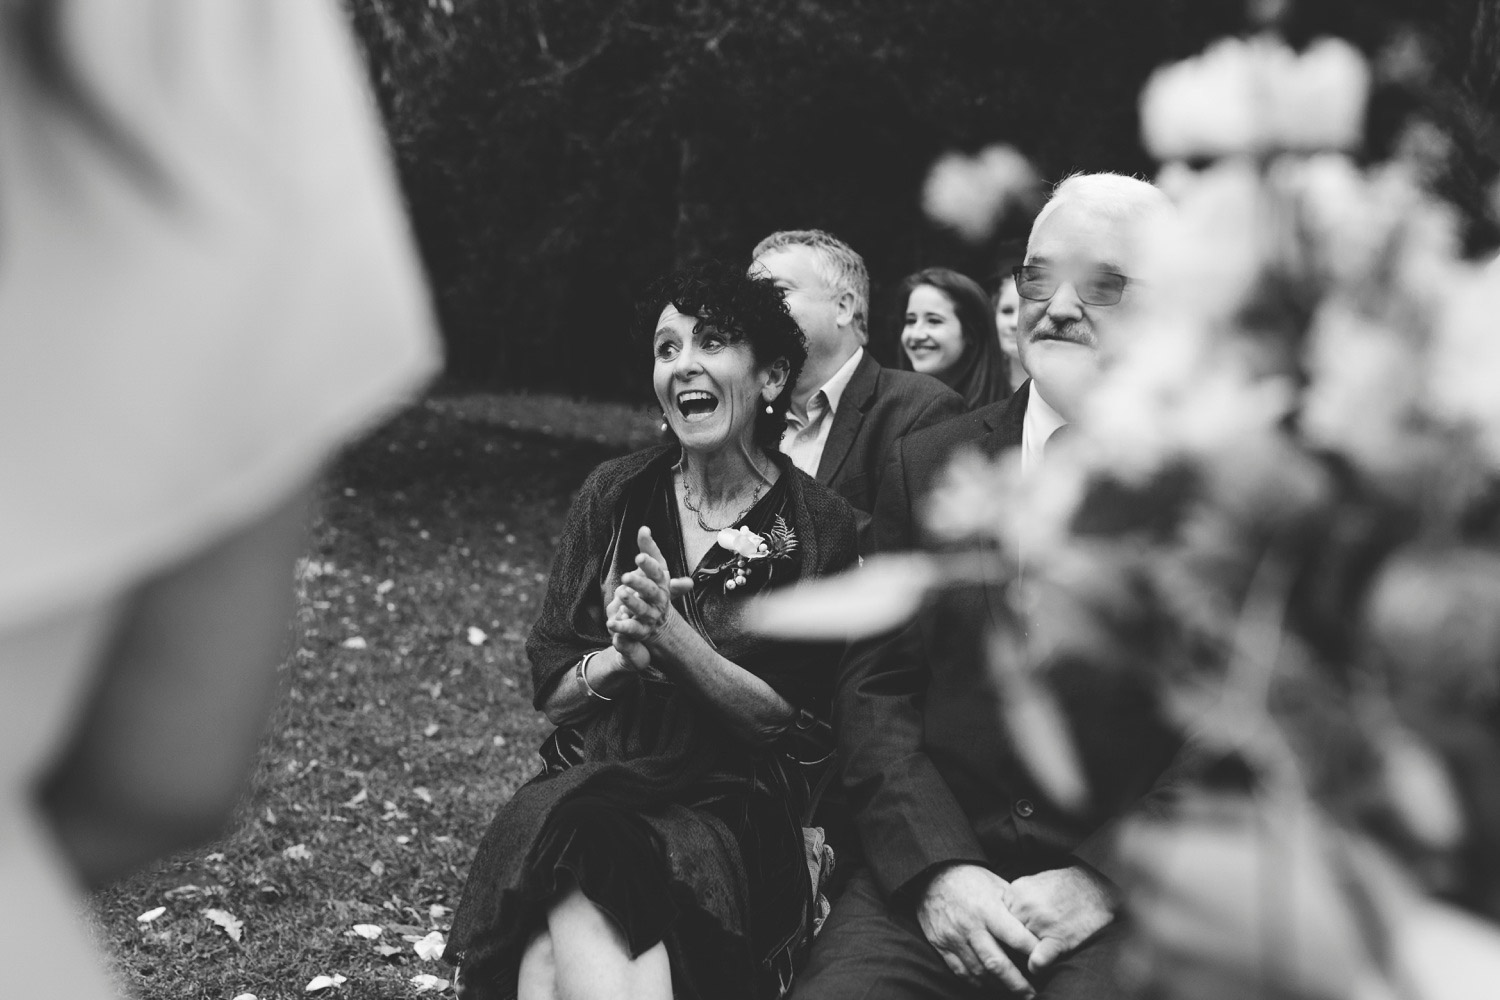 western-cape-photoghers-gen-scott-greyton-wedding-photography-charlie-ray80.jpg